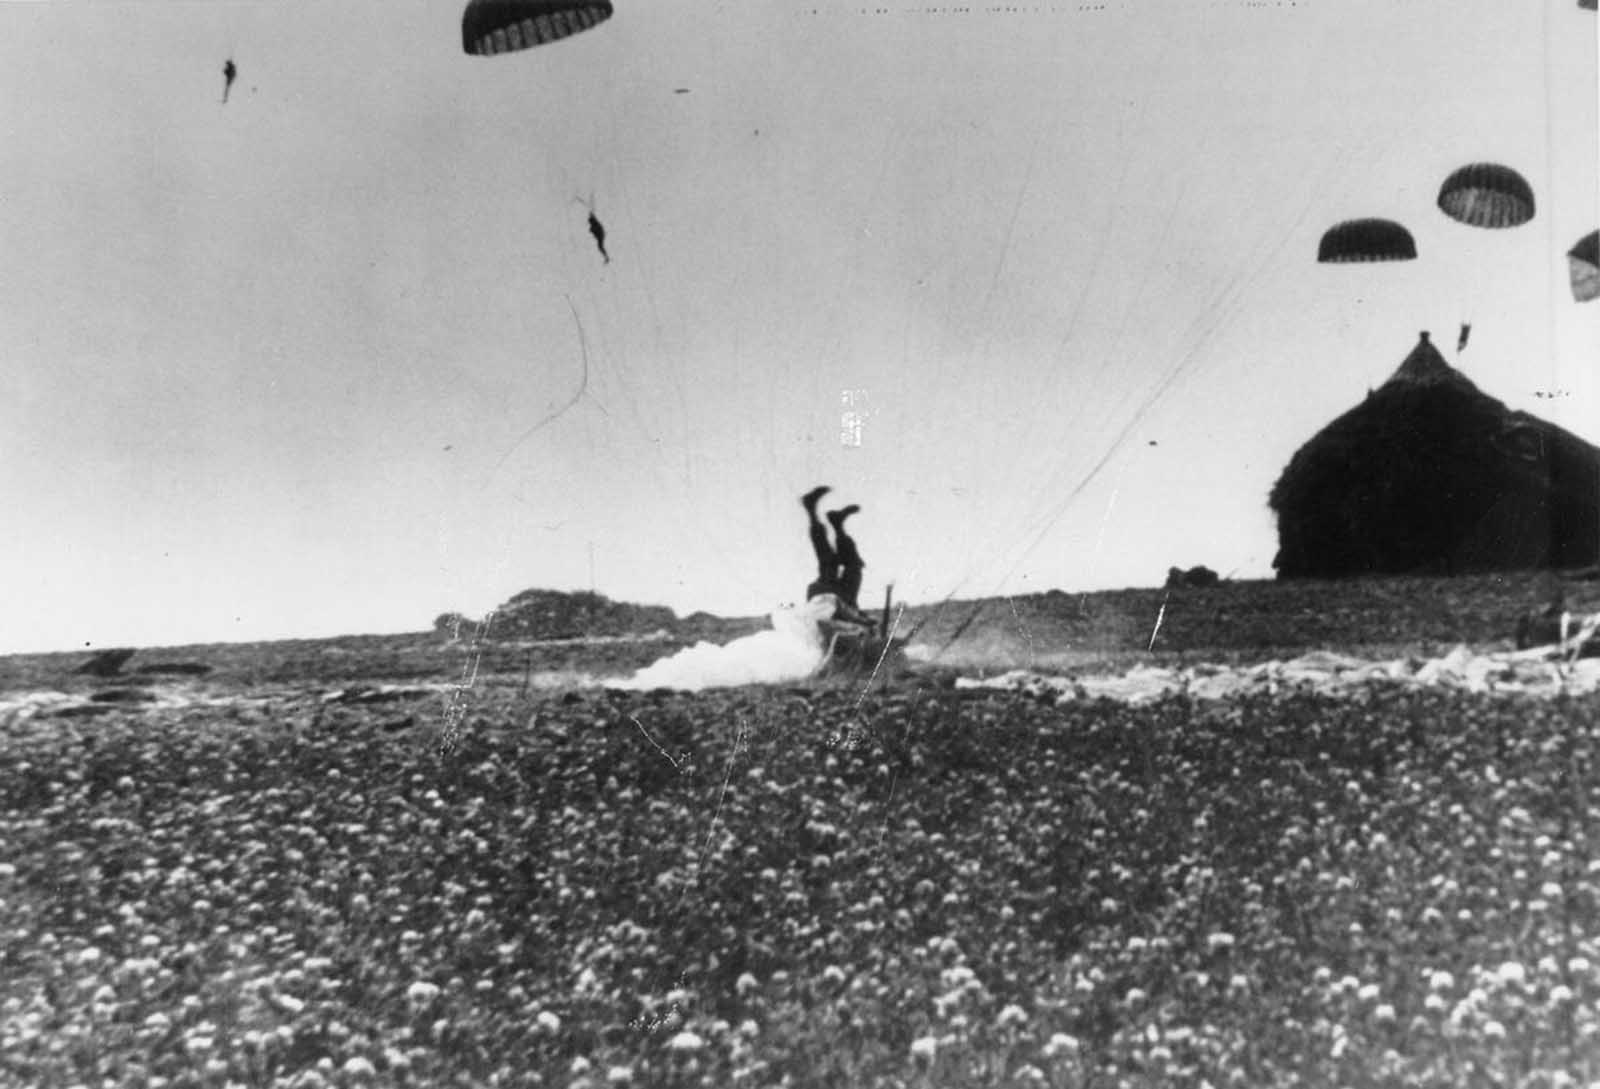 The haystack at right would have softened the landing for this paratrooper who took a tumble during operations in Holland by the 1st Allied Airborne Army on September 24, 1944.